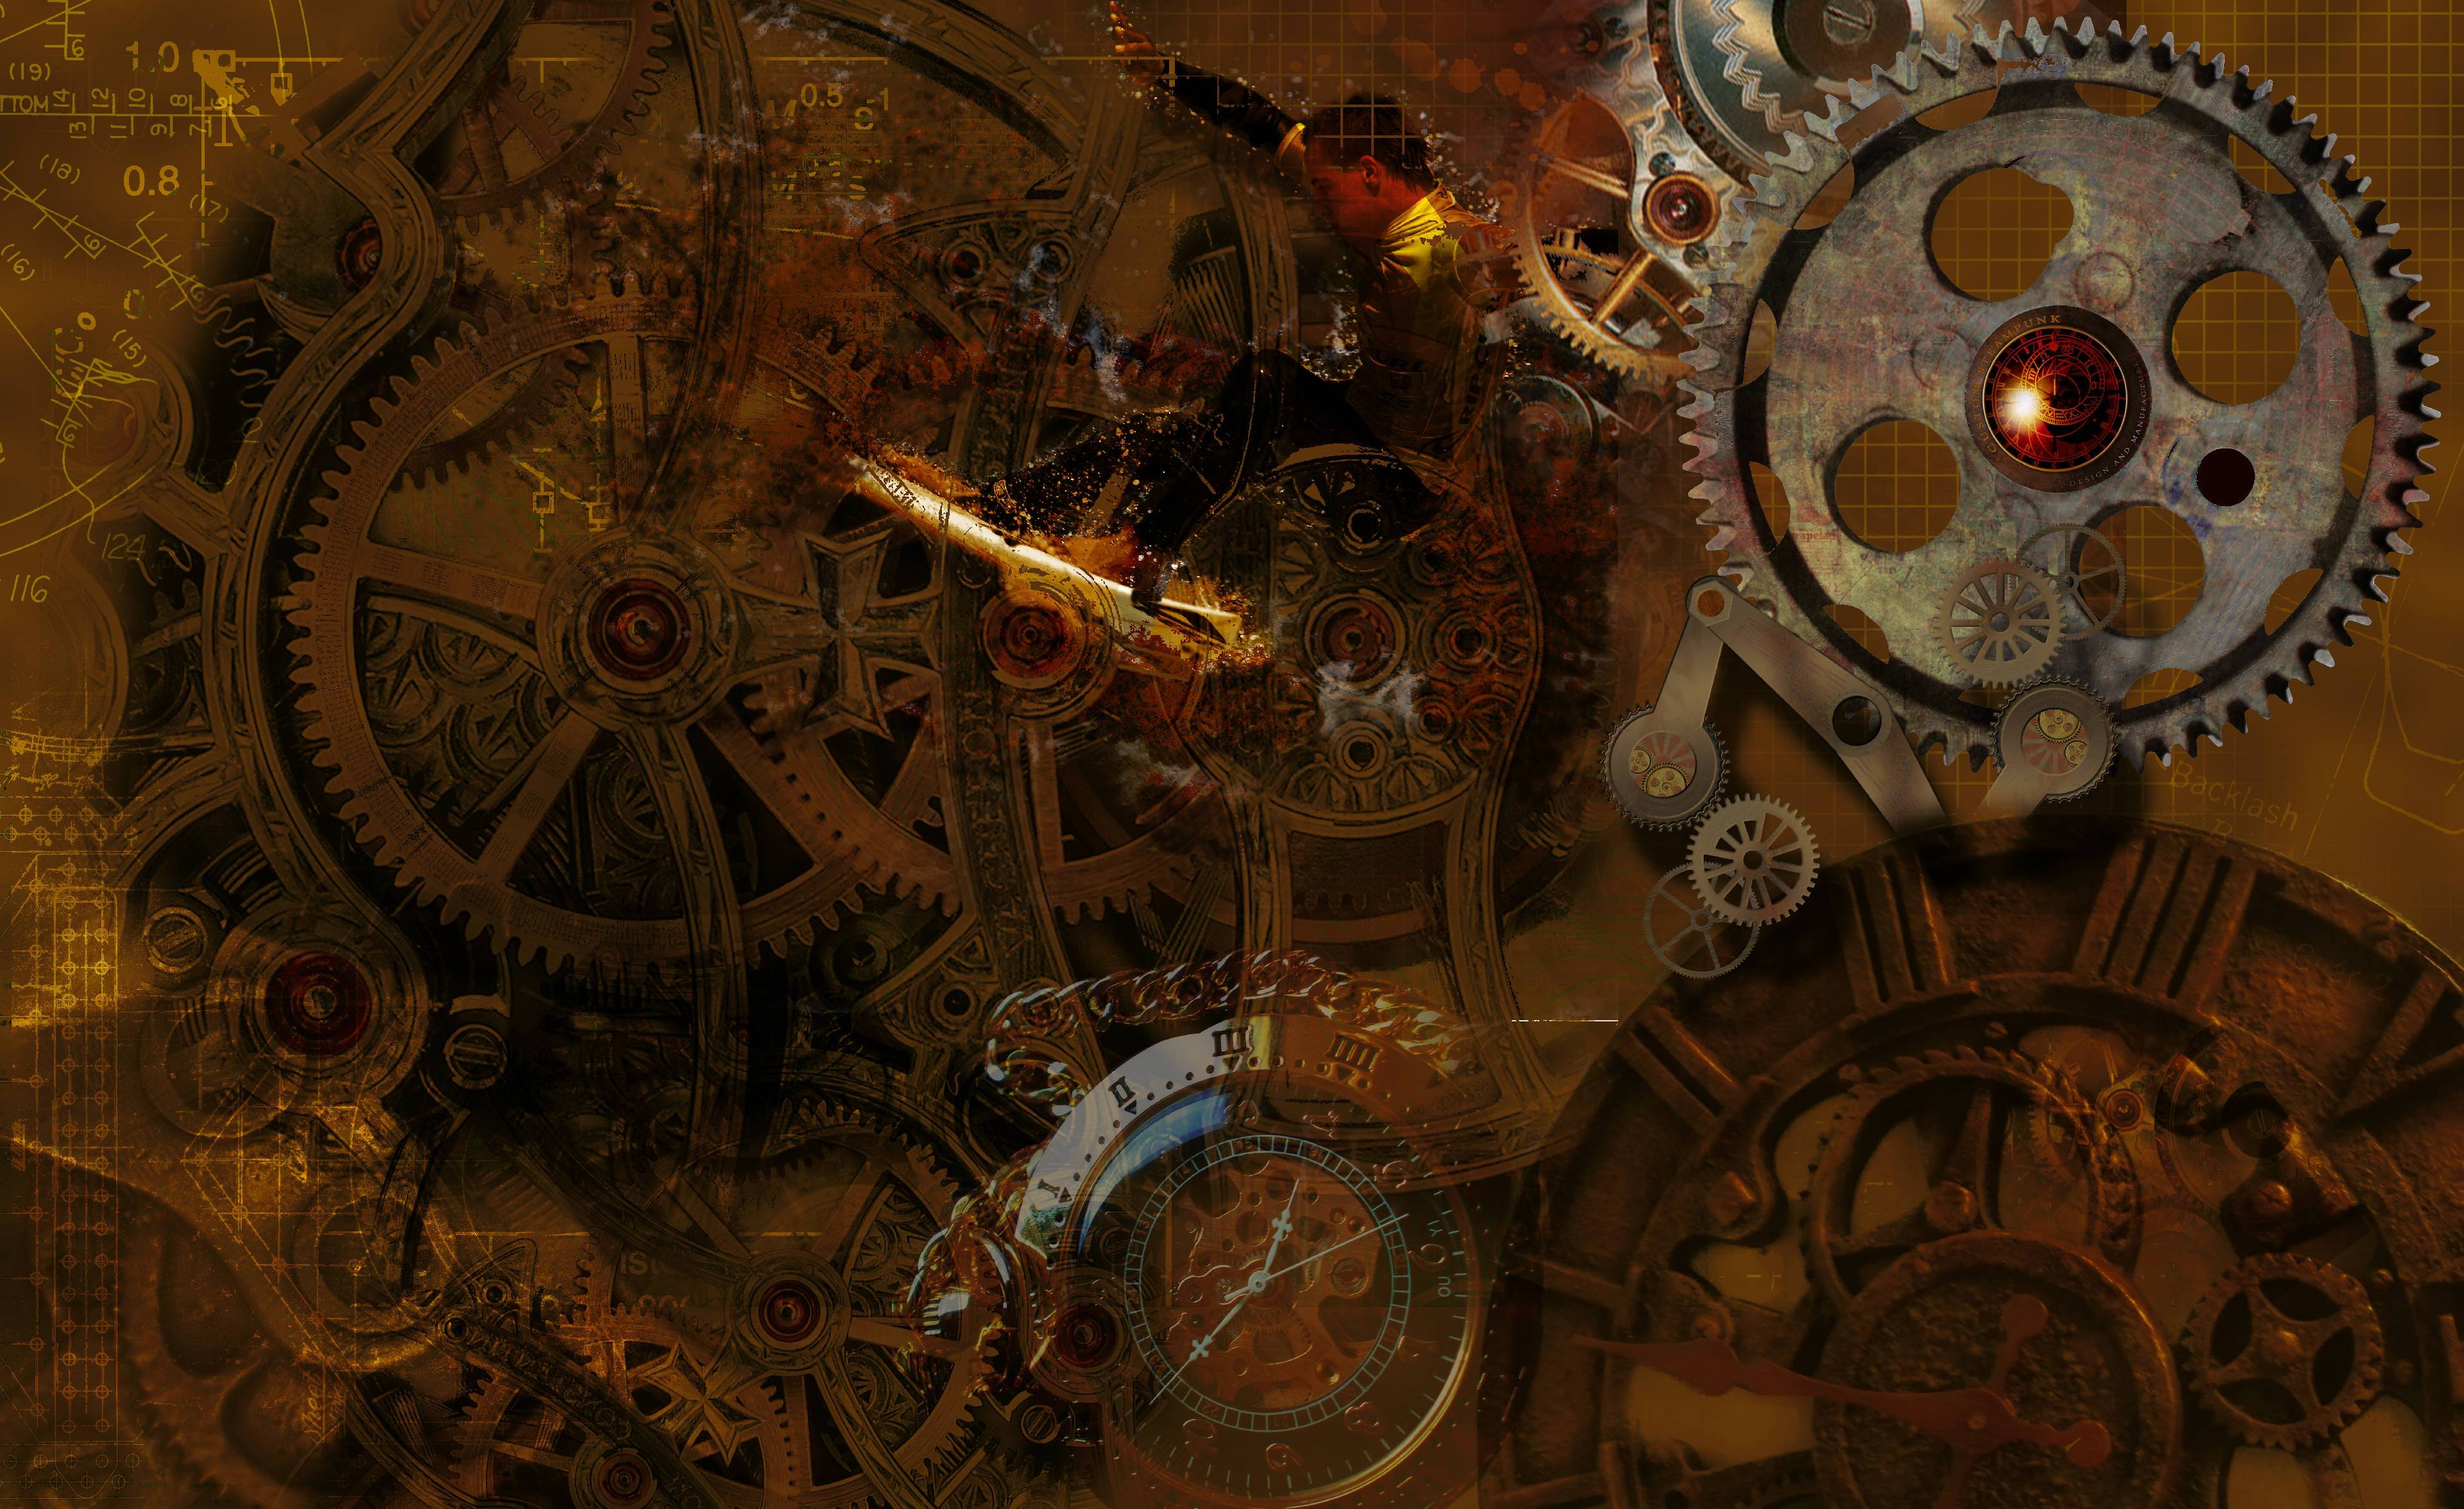 Steampunk Wallpaper Widescreen Images amp Pictures   Becuo 3840x2352